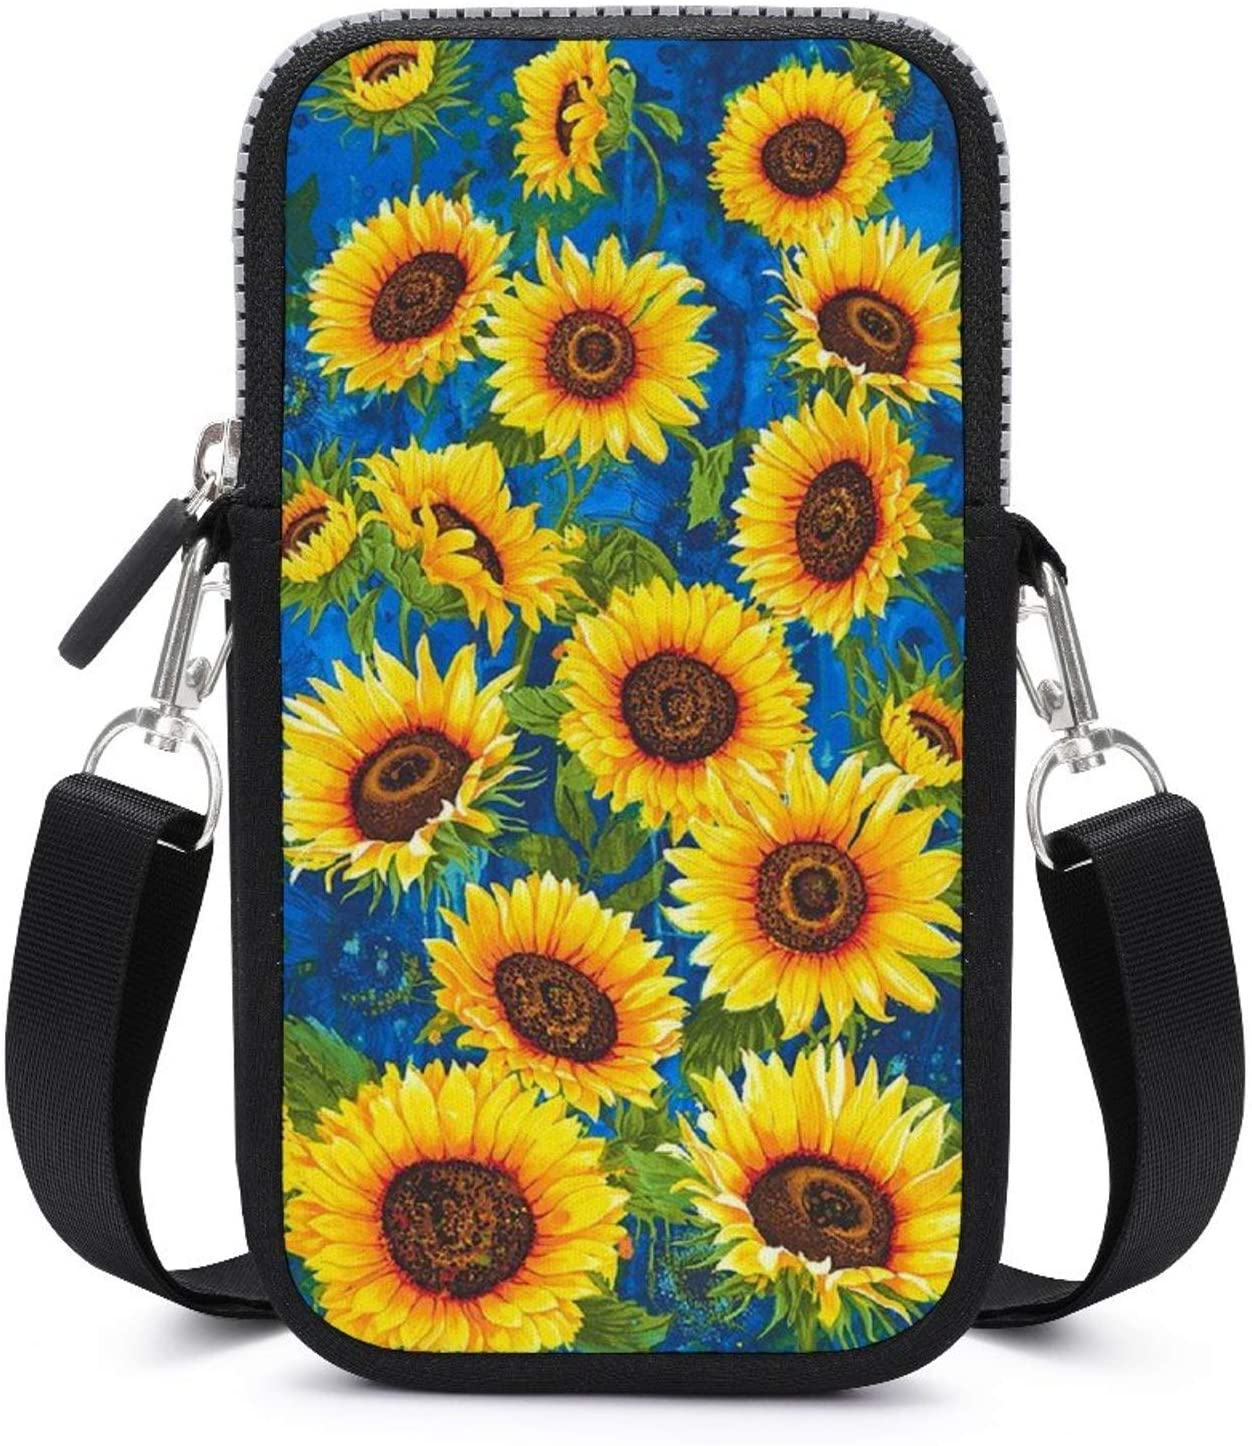 NiYoung Fashion Cell Phone Purse for Women and Girls - Small Crossbody Bag Shoulder Bag (Sunflower Painting Floral Art Pattern)